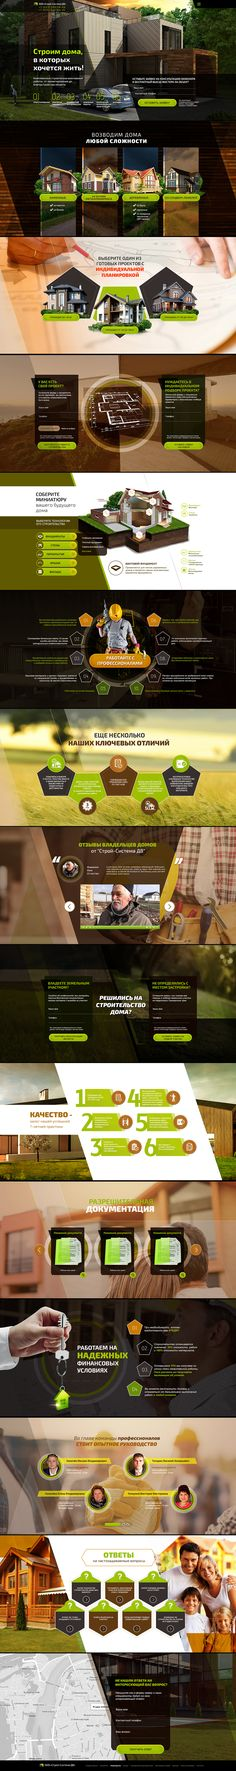 developed by High Grades Media #landing, #page, #design, #web, #HTML5, #photoshop, #website